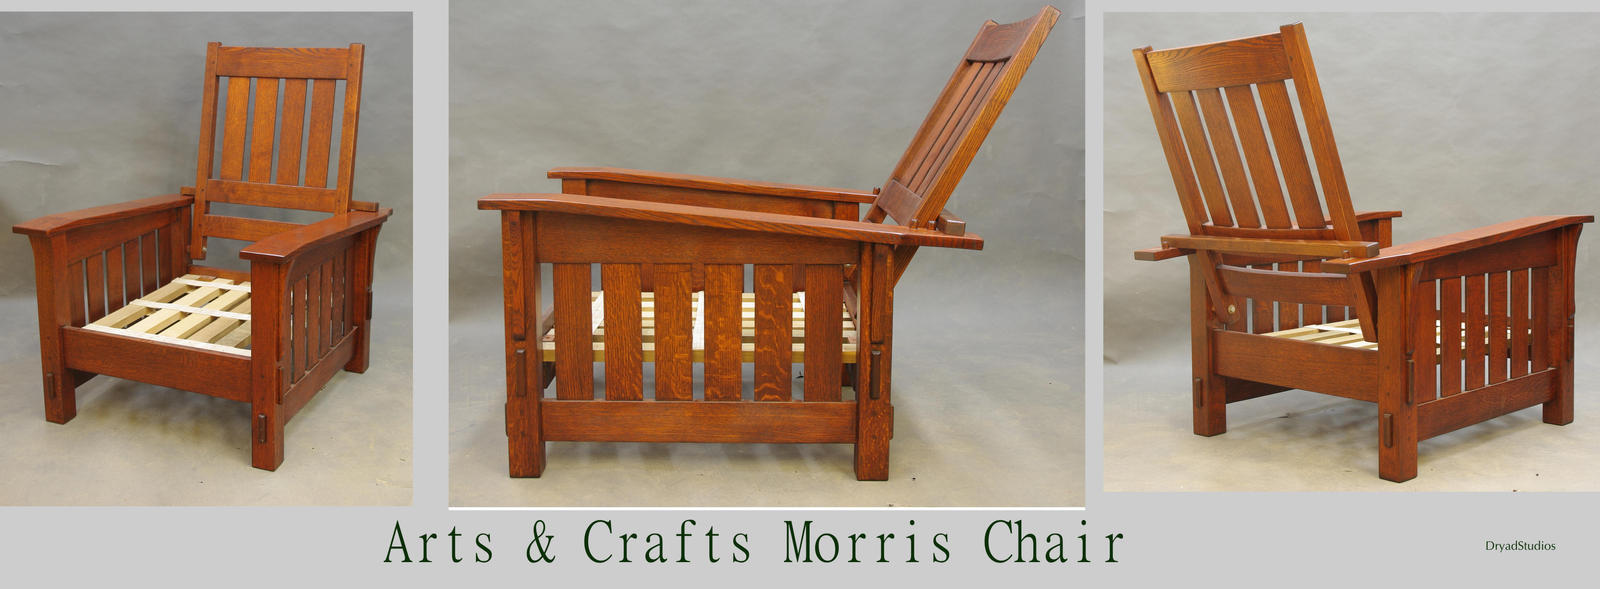 Wood Project Morris Chair Woodworking Plans Free